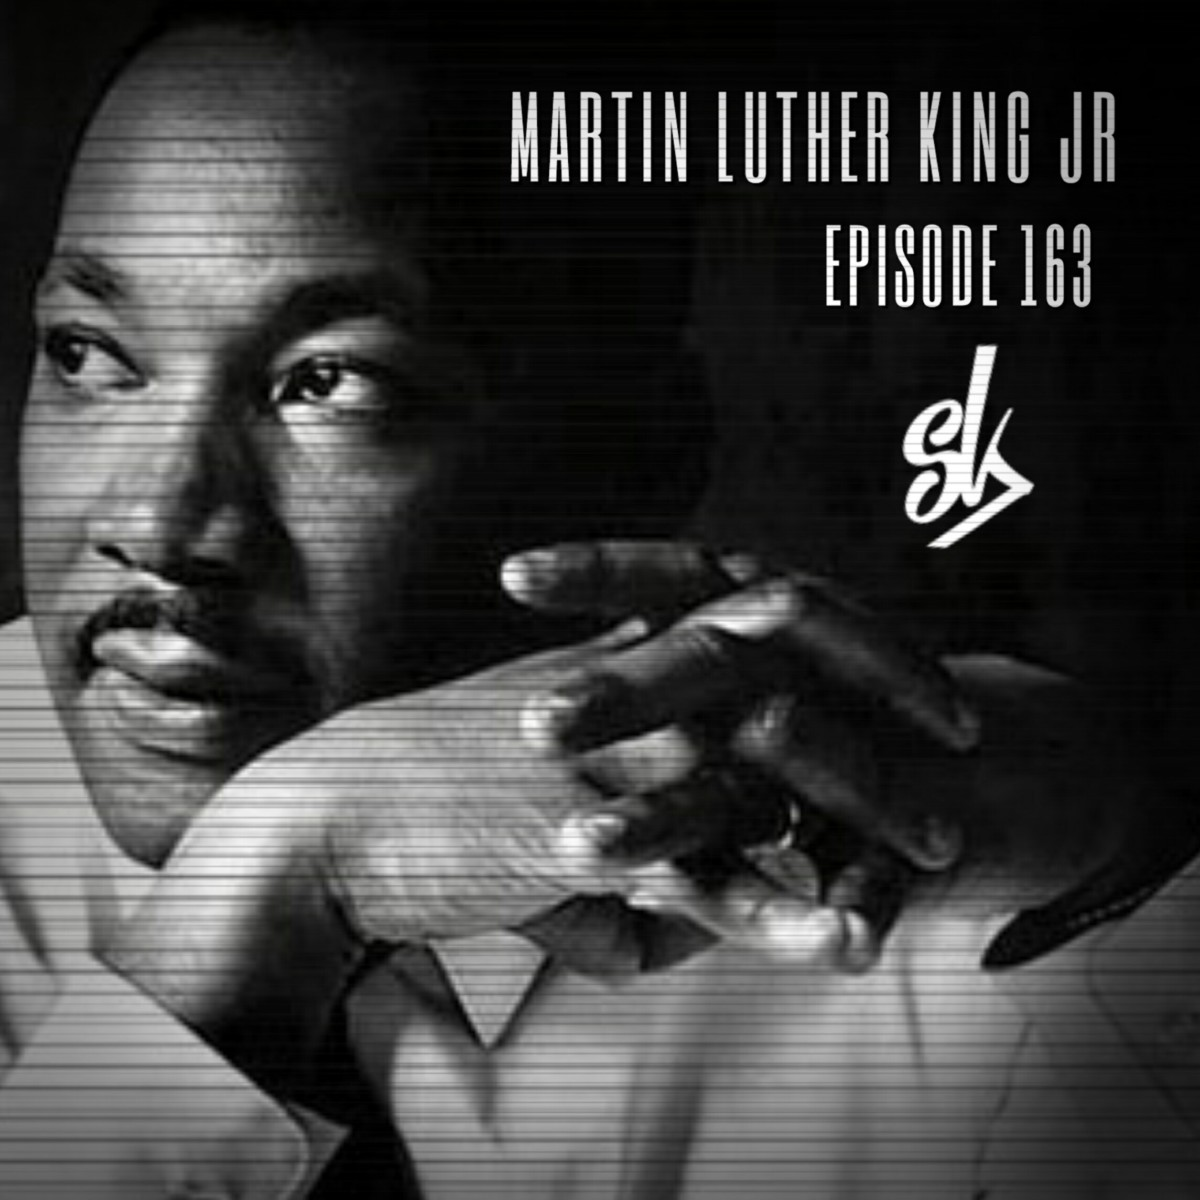 sofa king podcast raymour and flanigan with chaise episode 163 martin luther jr a true american hero